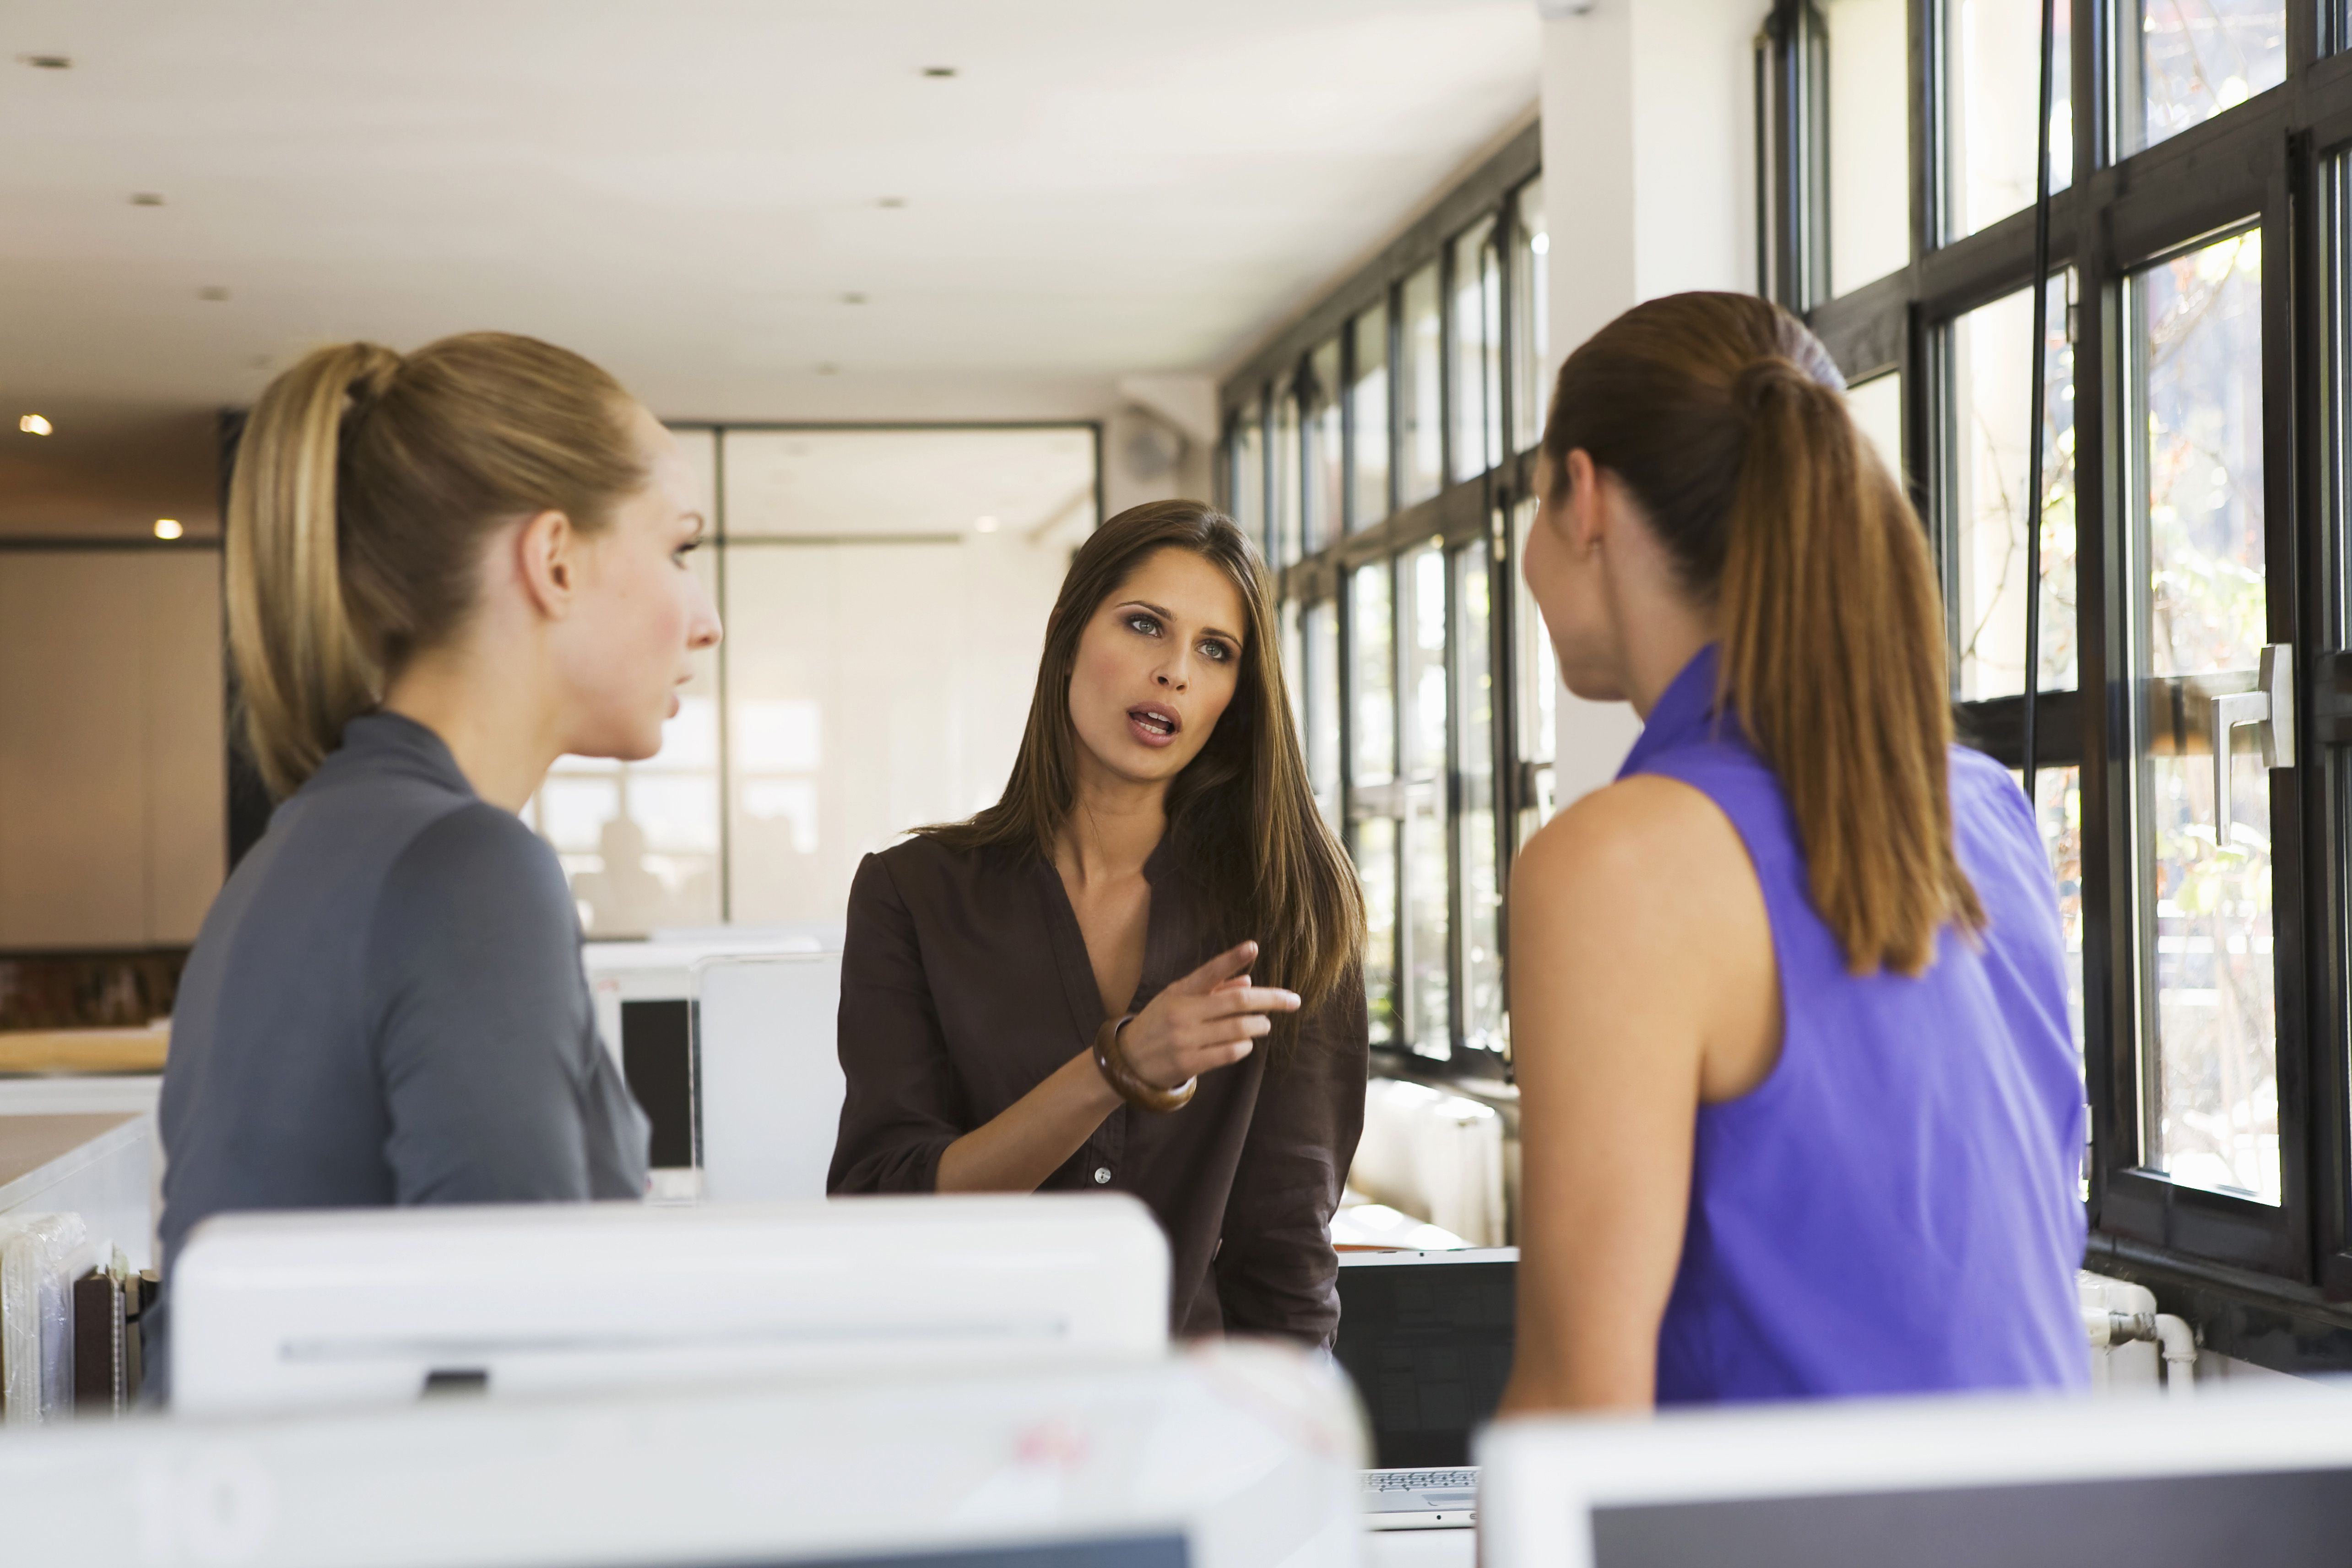 Three women in office having an argument that is causing negativity in their workplace.